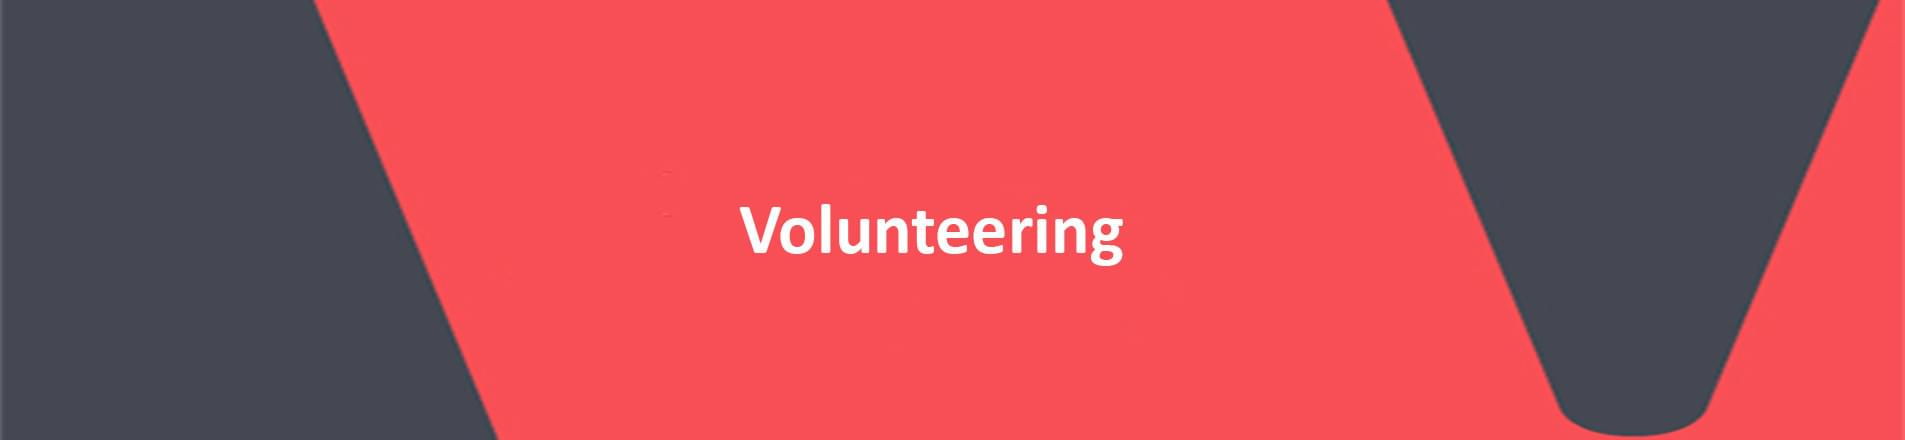 red banner with white text reading volunteering